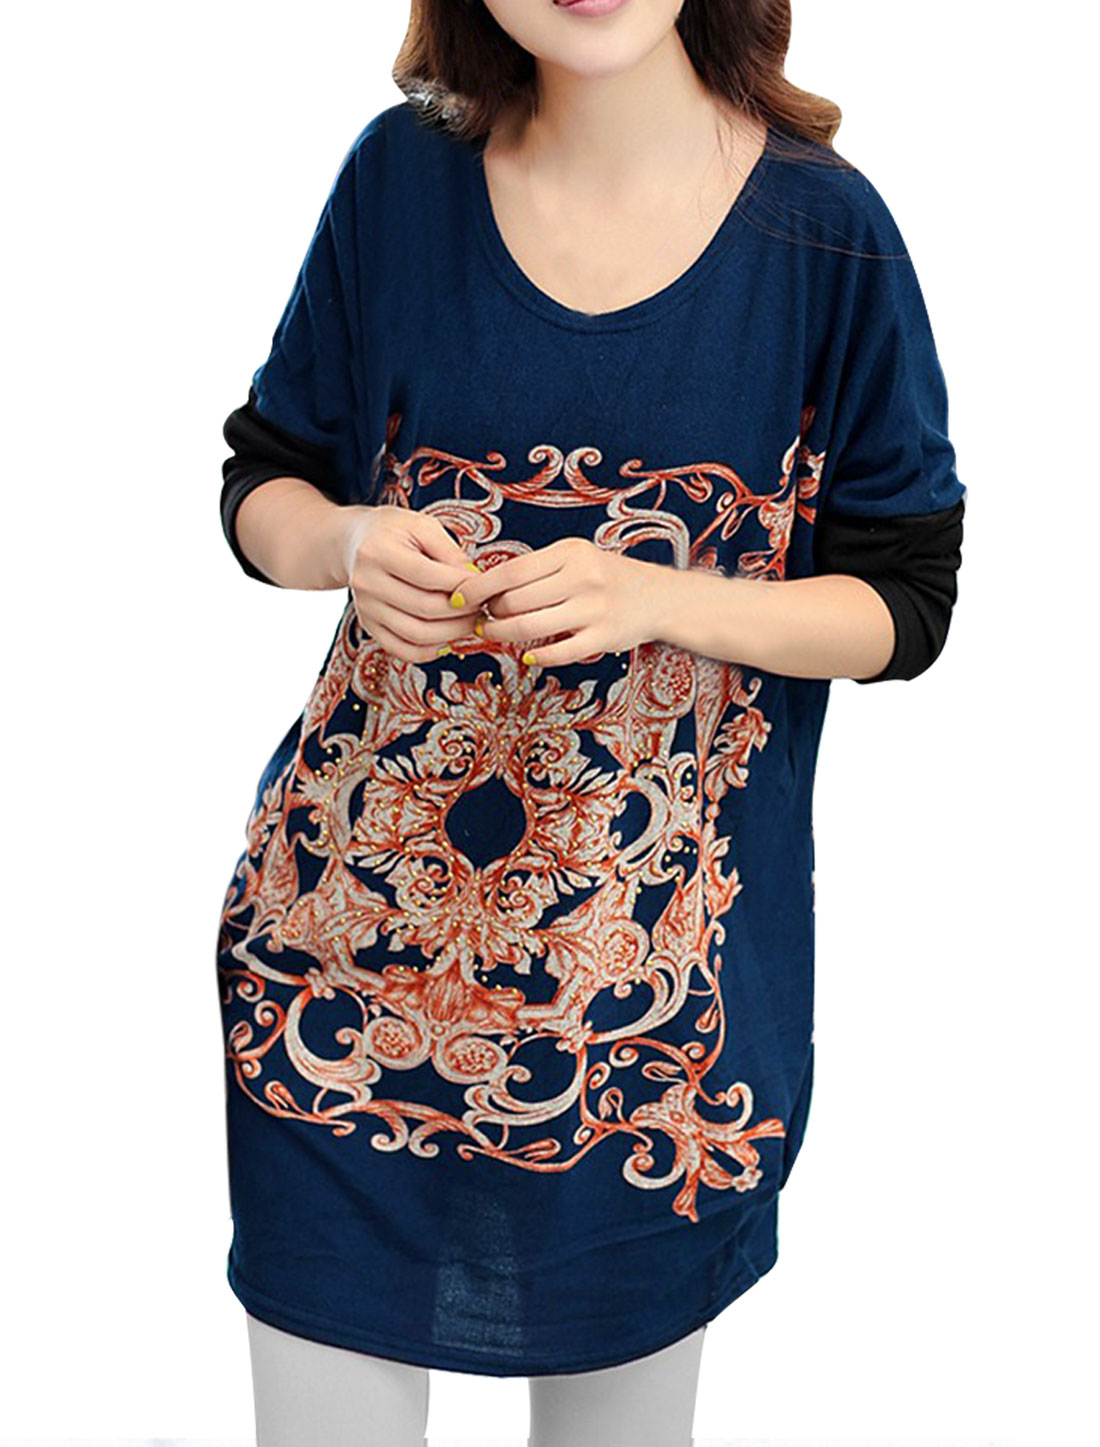 Women's Spliced Batwing Sleeve Stretchy Soft Orange Navy Blue Shirt M